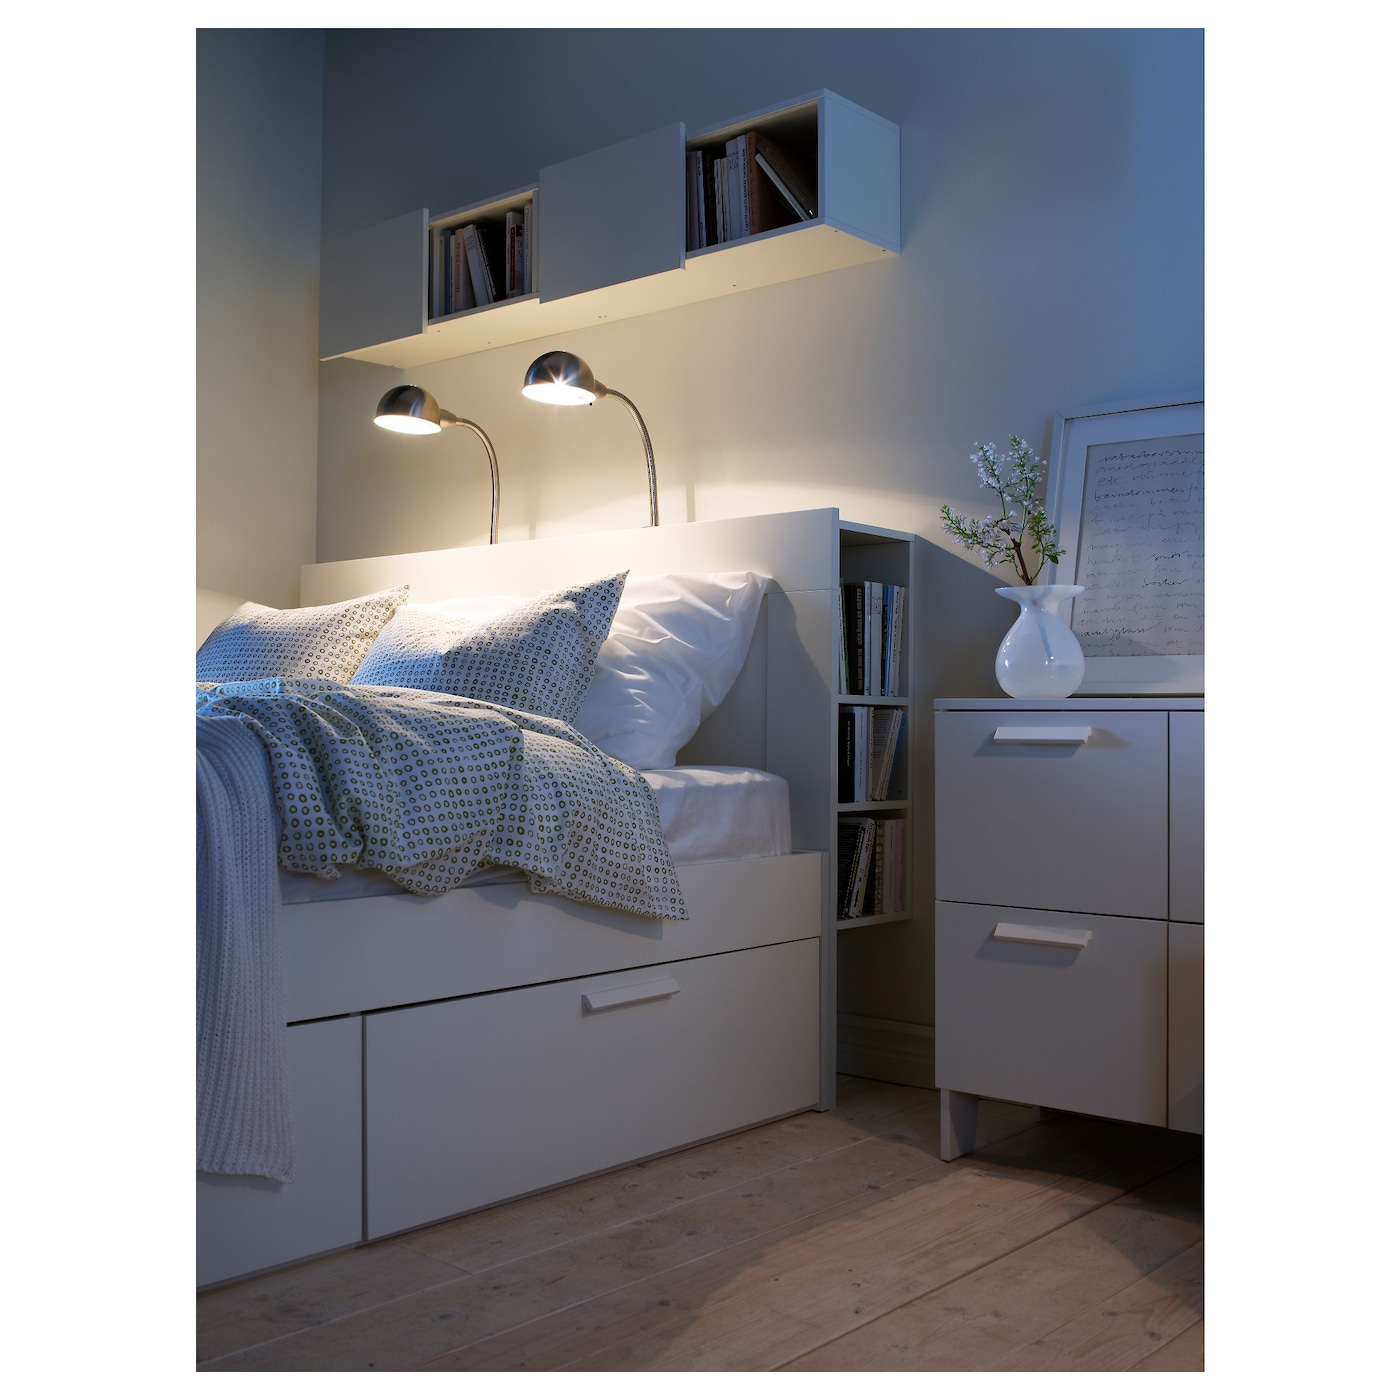 Ikea Brimnes Headboard With Storage Compartment Perfect For Things You Want To Reach From Your Bed